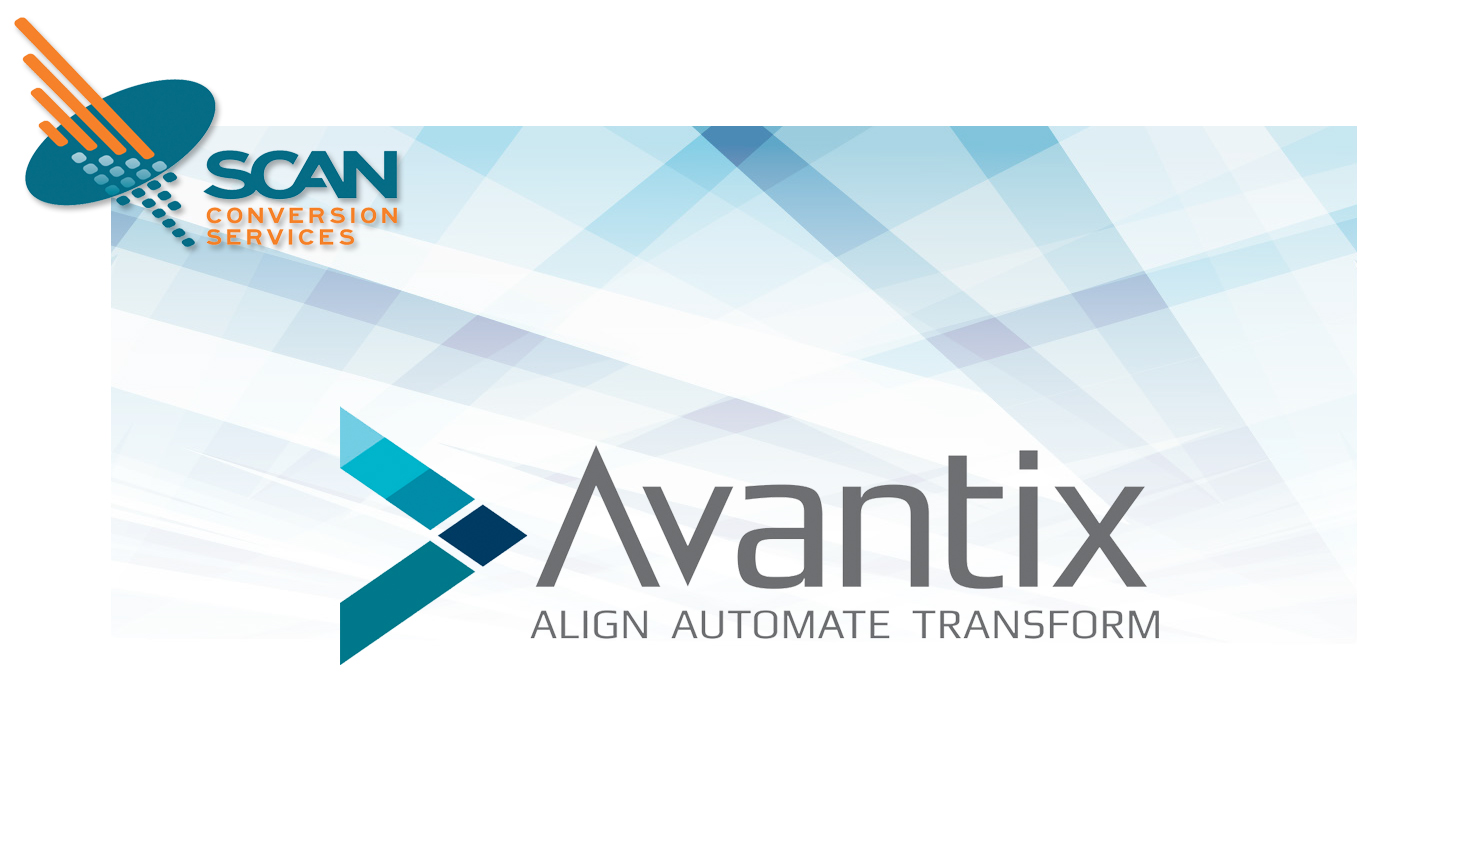 Avantix scanning services